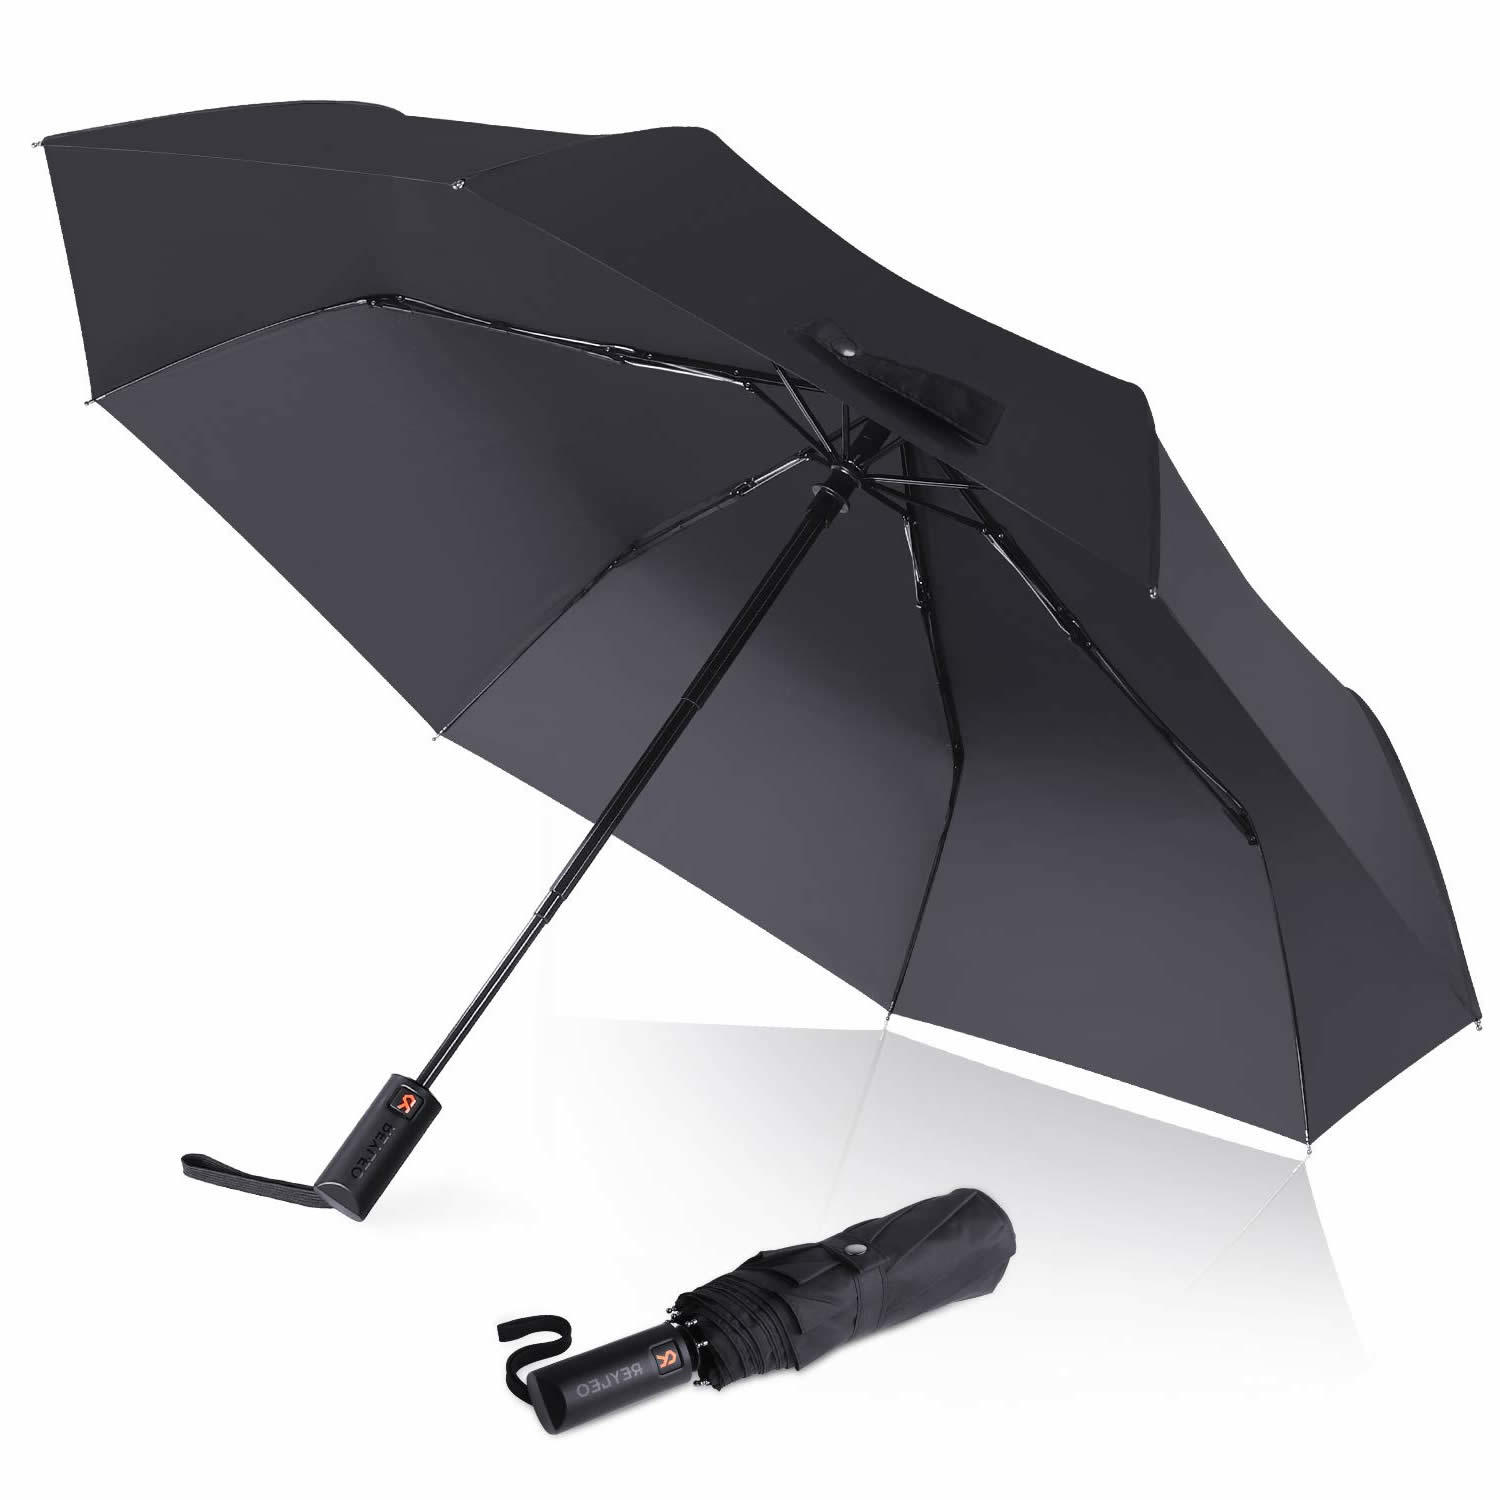 Custom The time tunnel Compact Travel Windproof Rainproof Foldable Umbrella